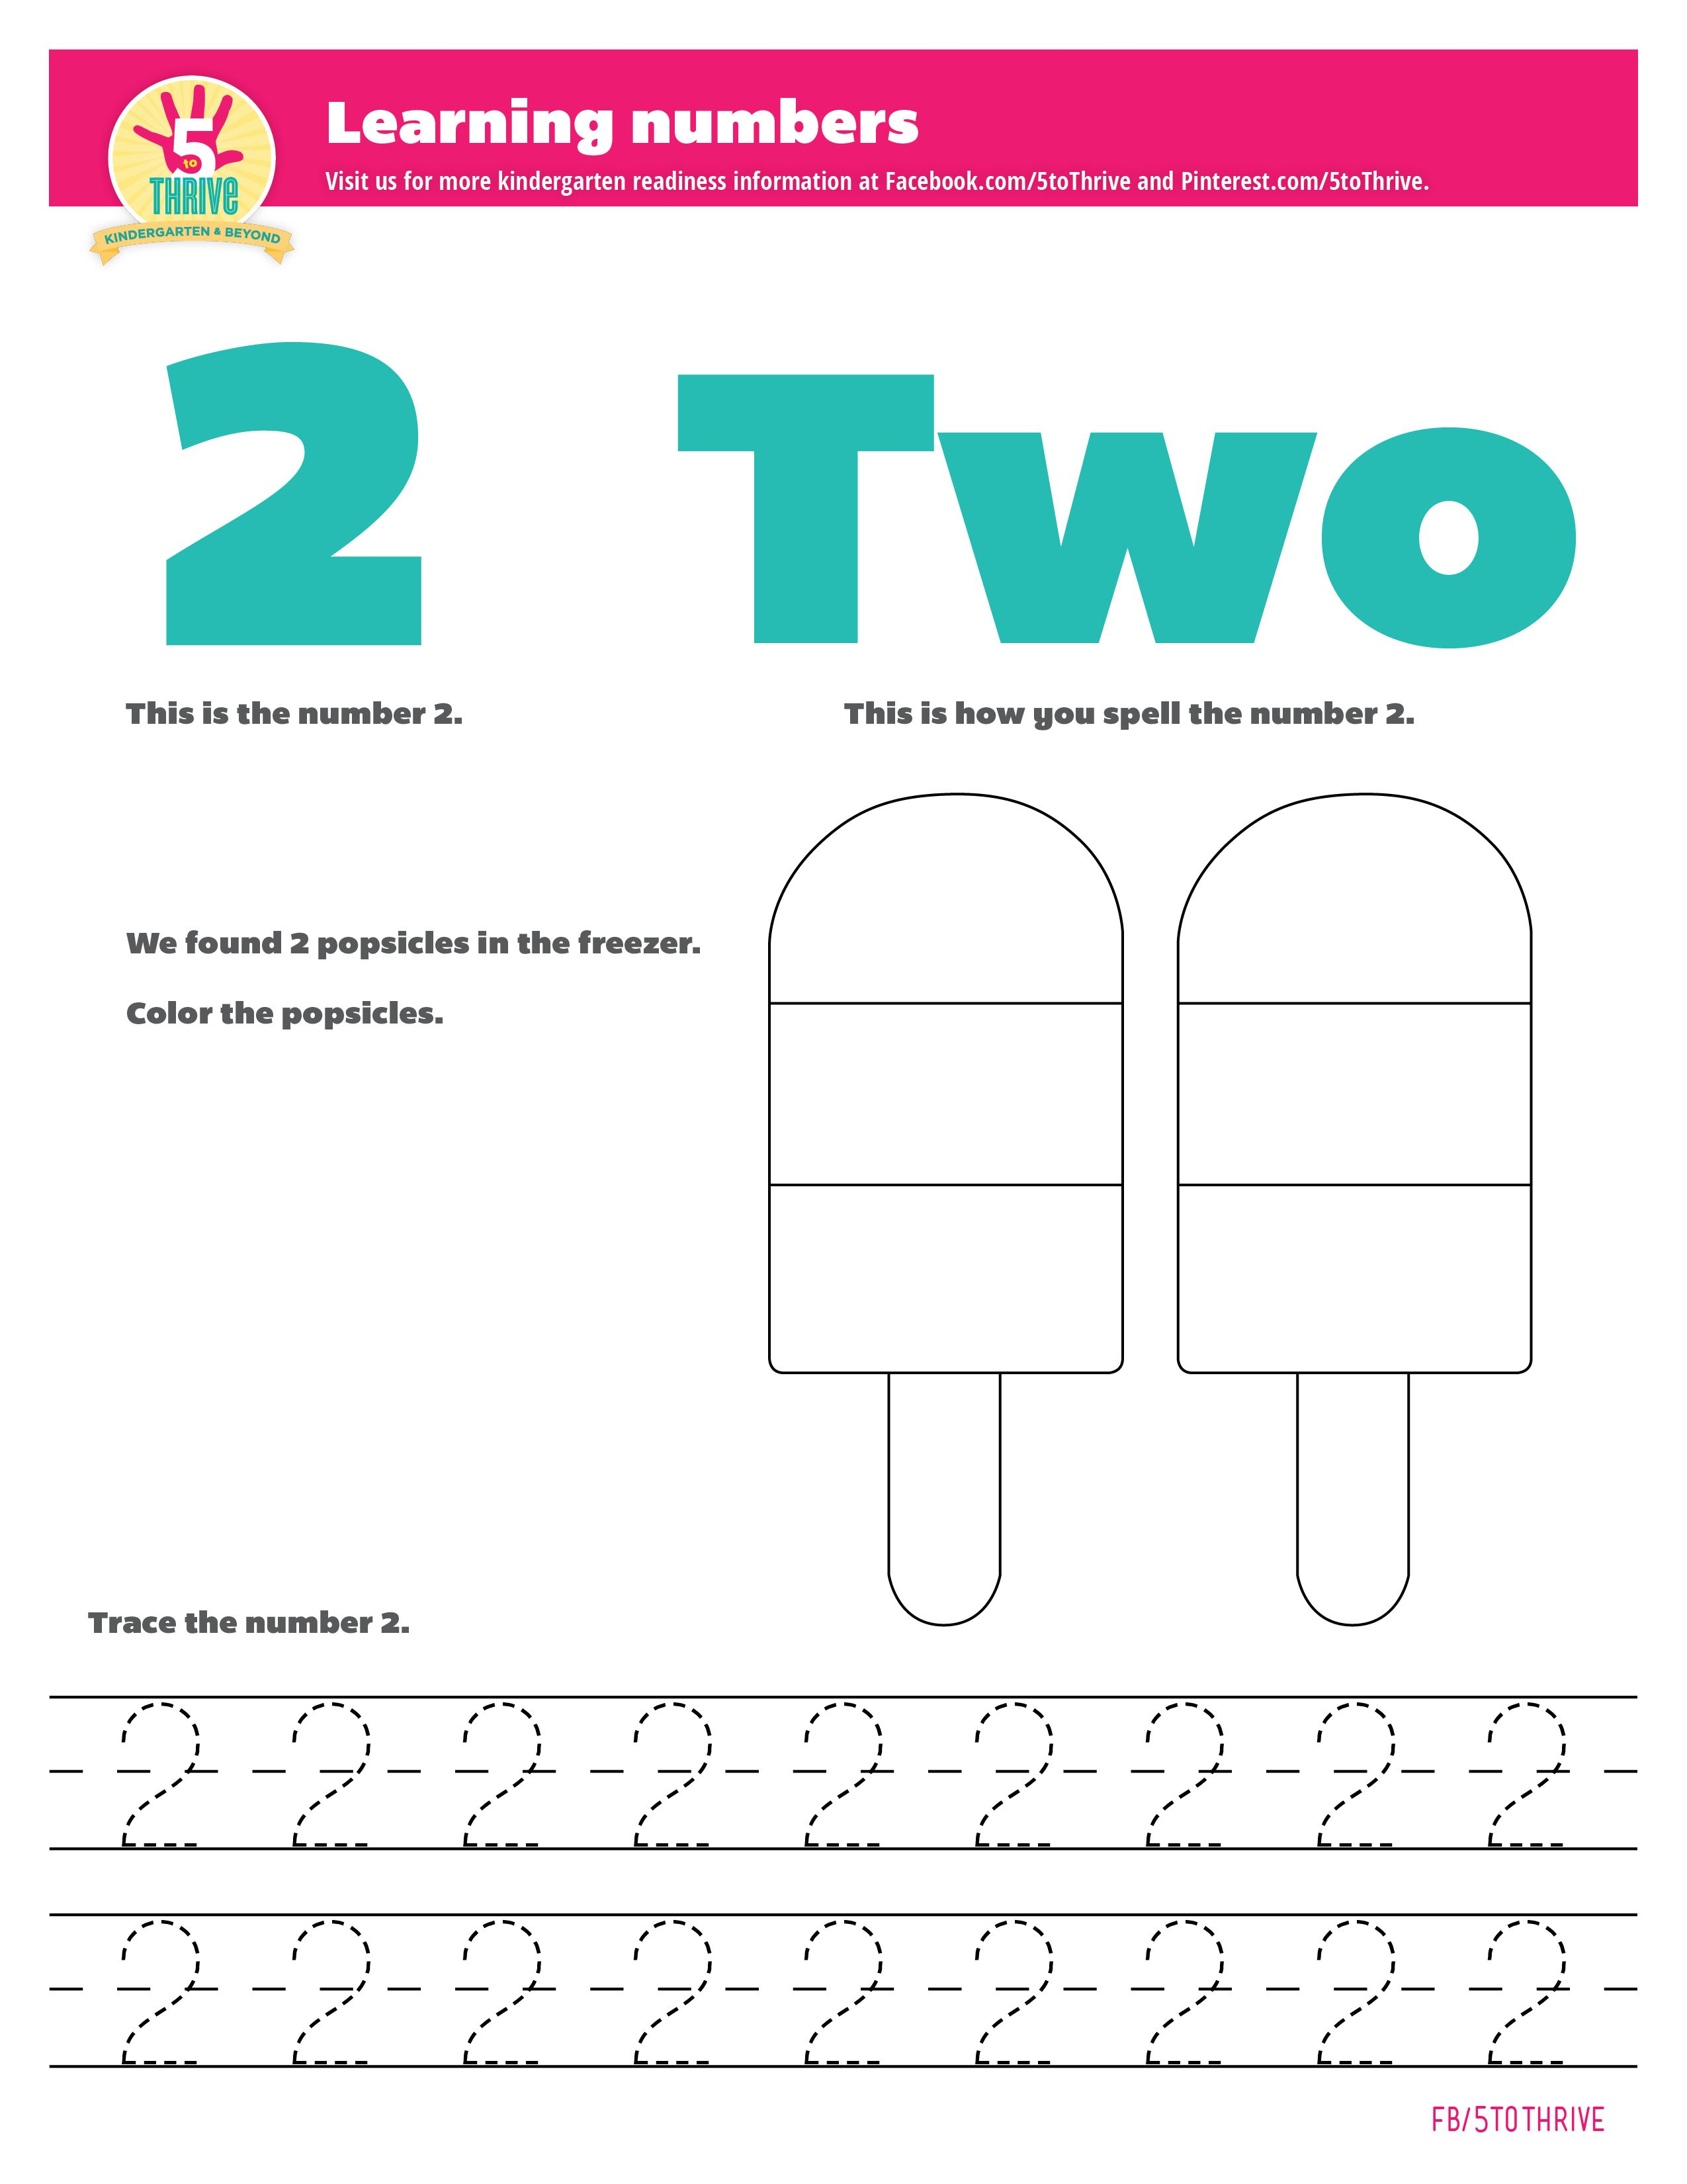 Learning Numbers This Is What The Number 2 Looks Like